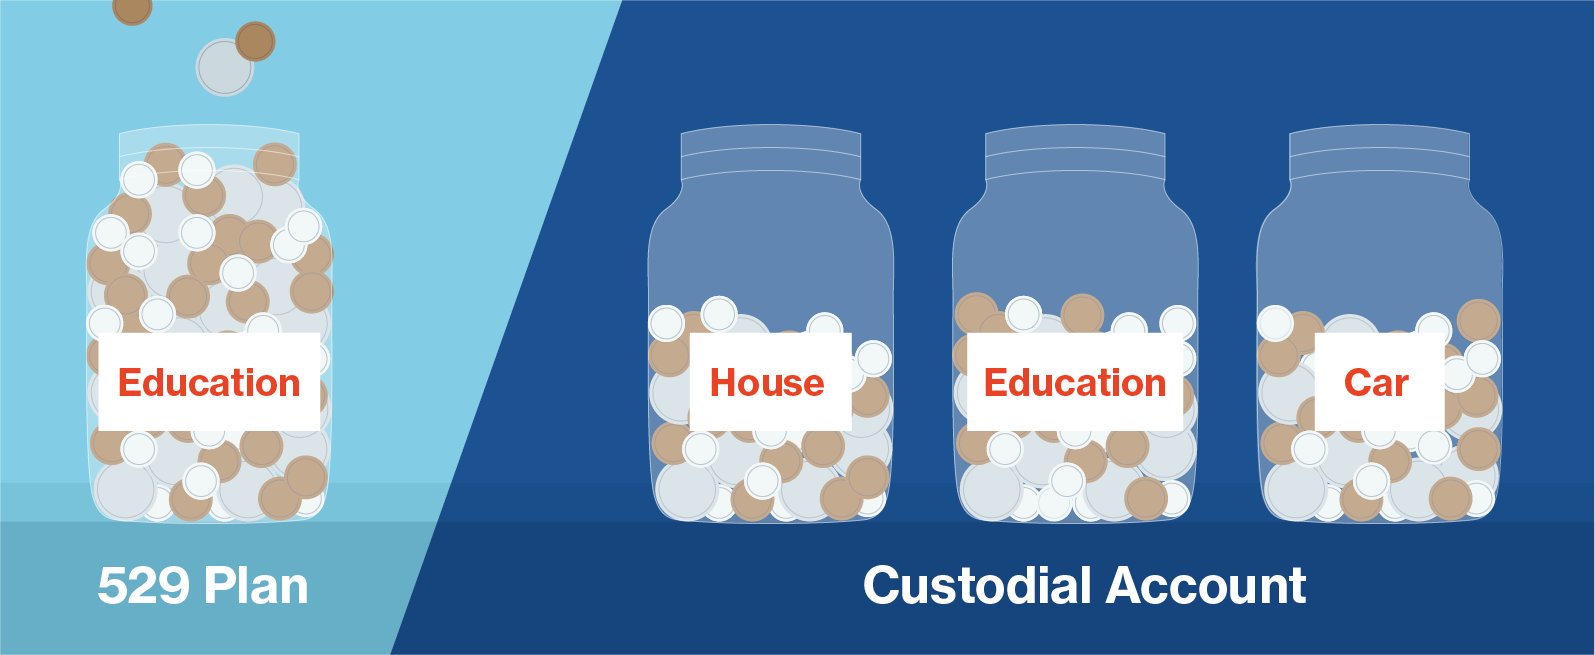 529 plans have one main use while custodial accounts have many